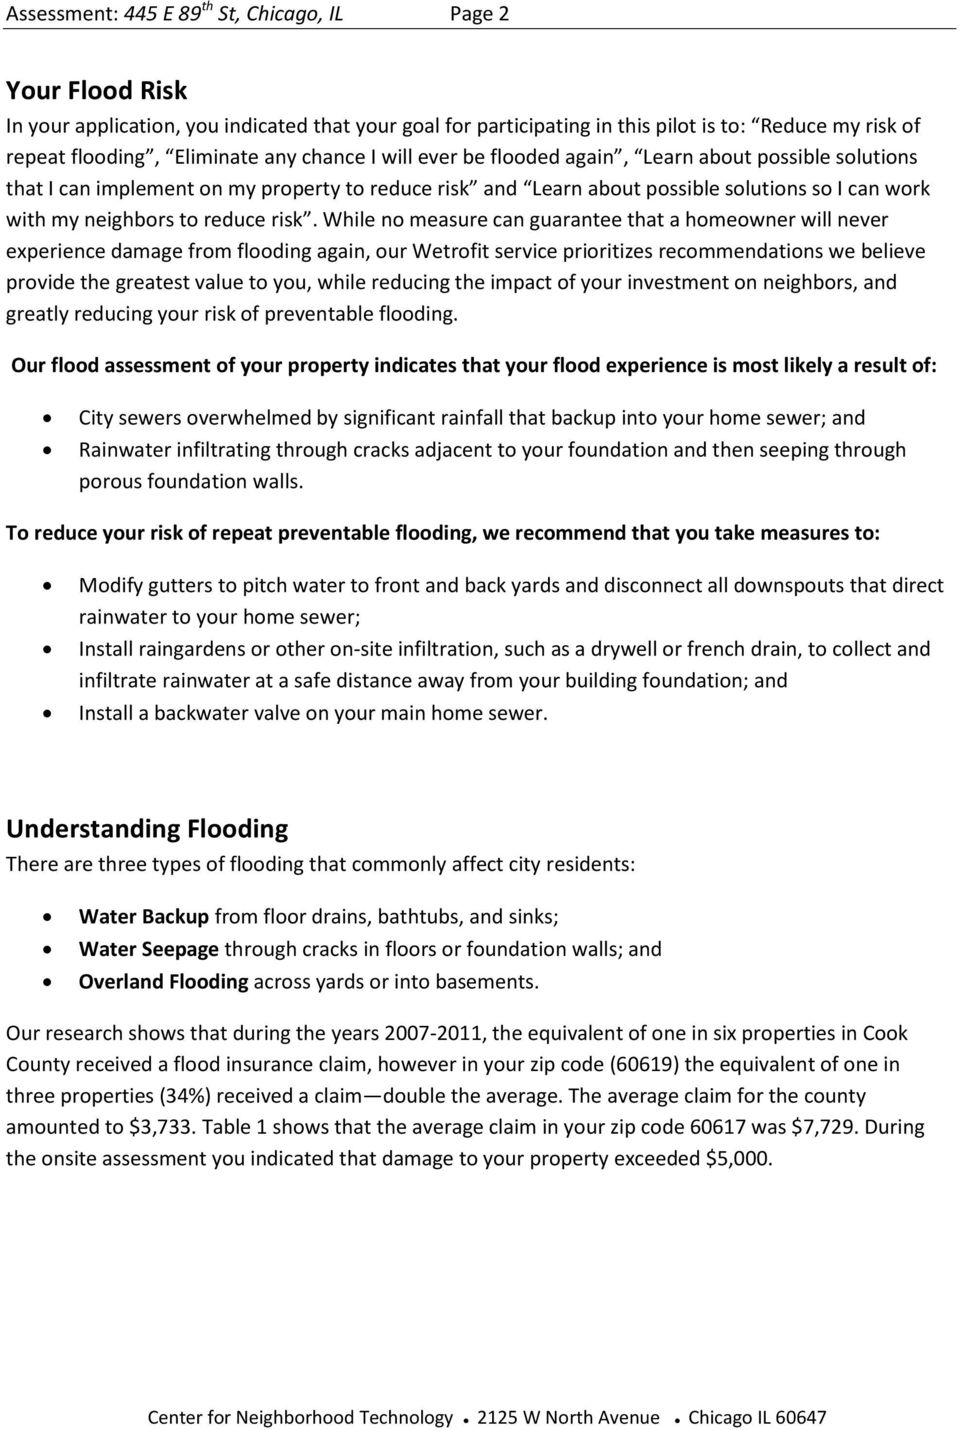 risk. While no measure can guarantee that a homeowner will never experience damage from flooding again, our Wetrofit service prioritizes recommendations we believe provide the greatest value to you,